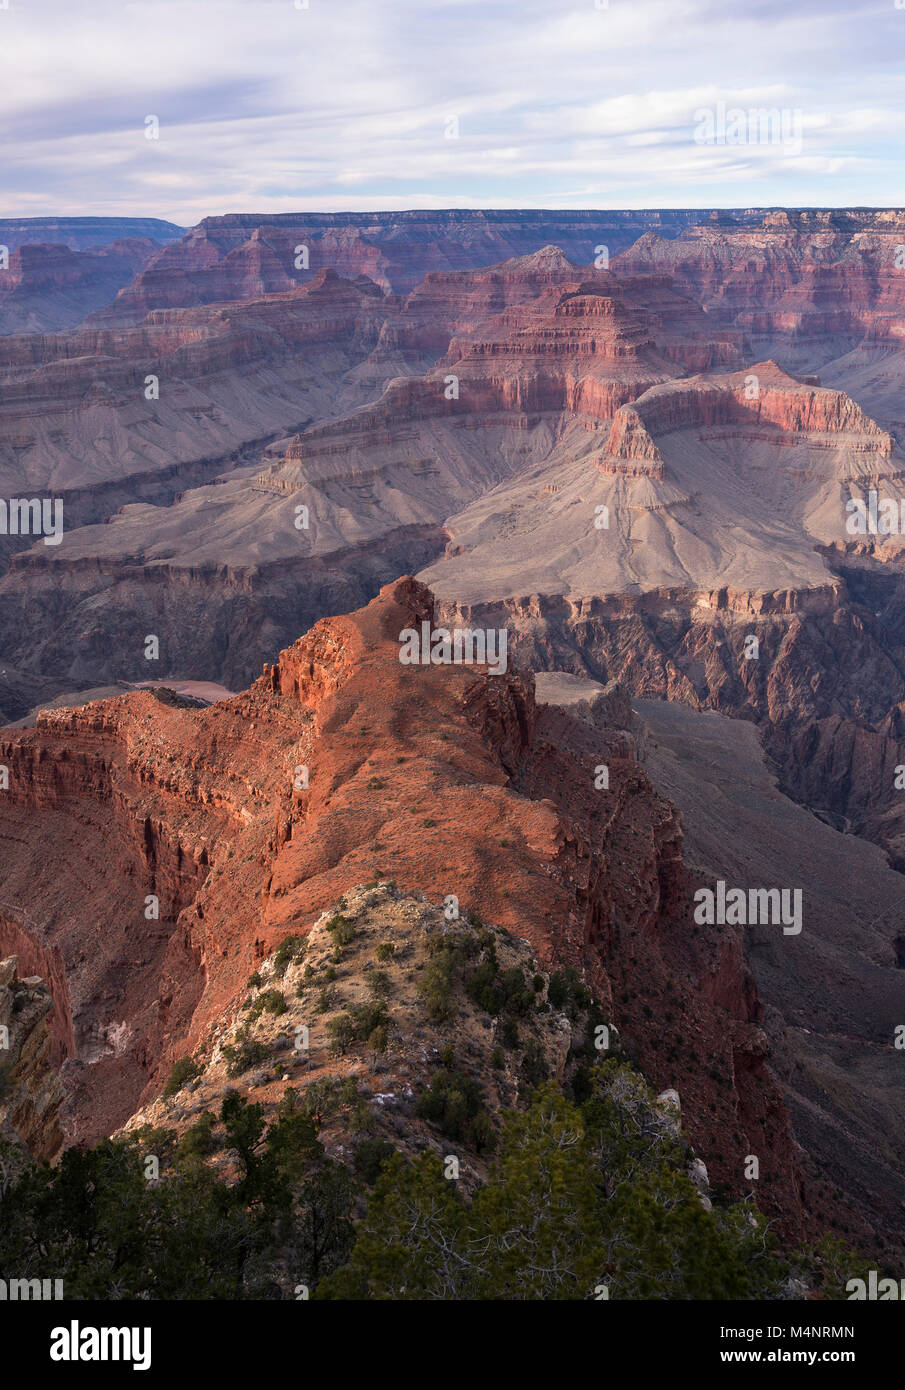 Grand Canyon National park above the Colorado River as viewed from the south rim. World famous destination located in northern Arizona. Stock Photo